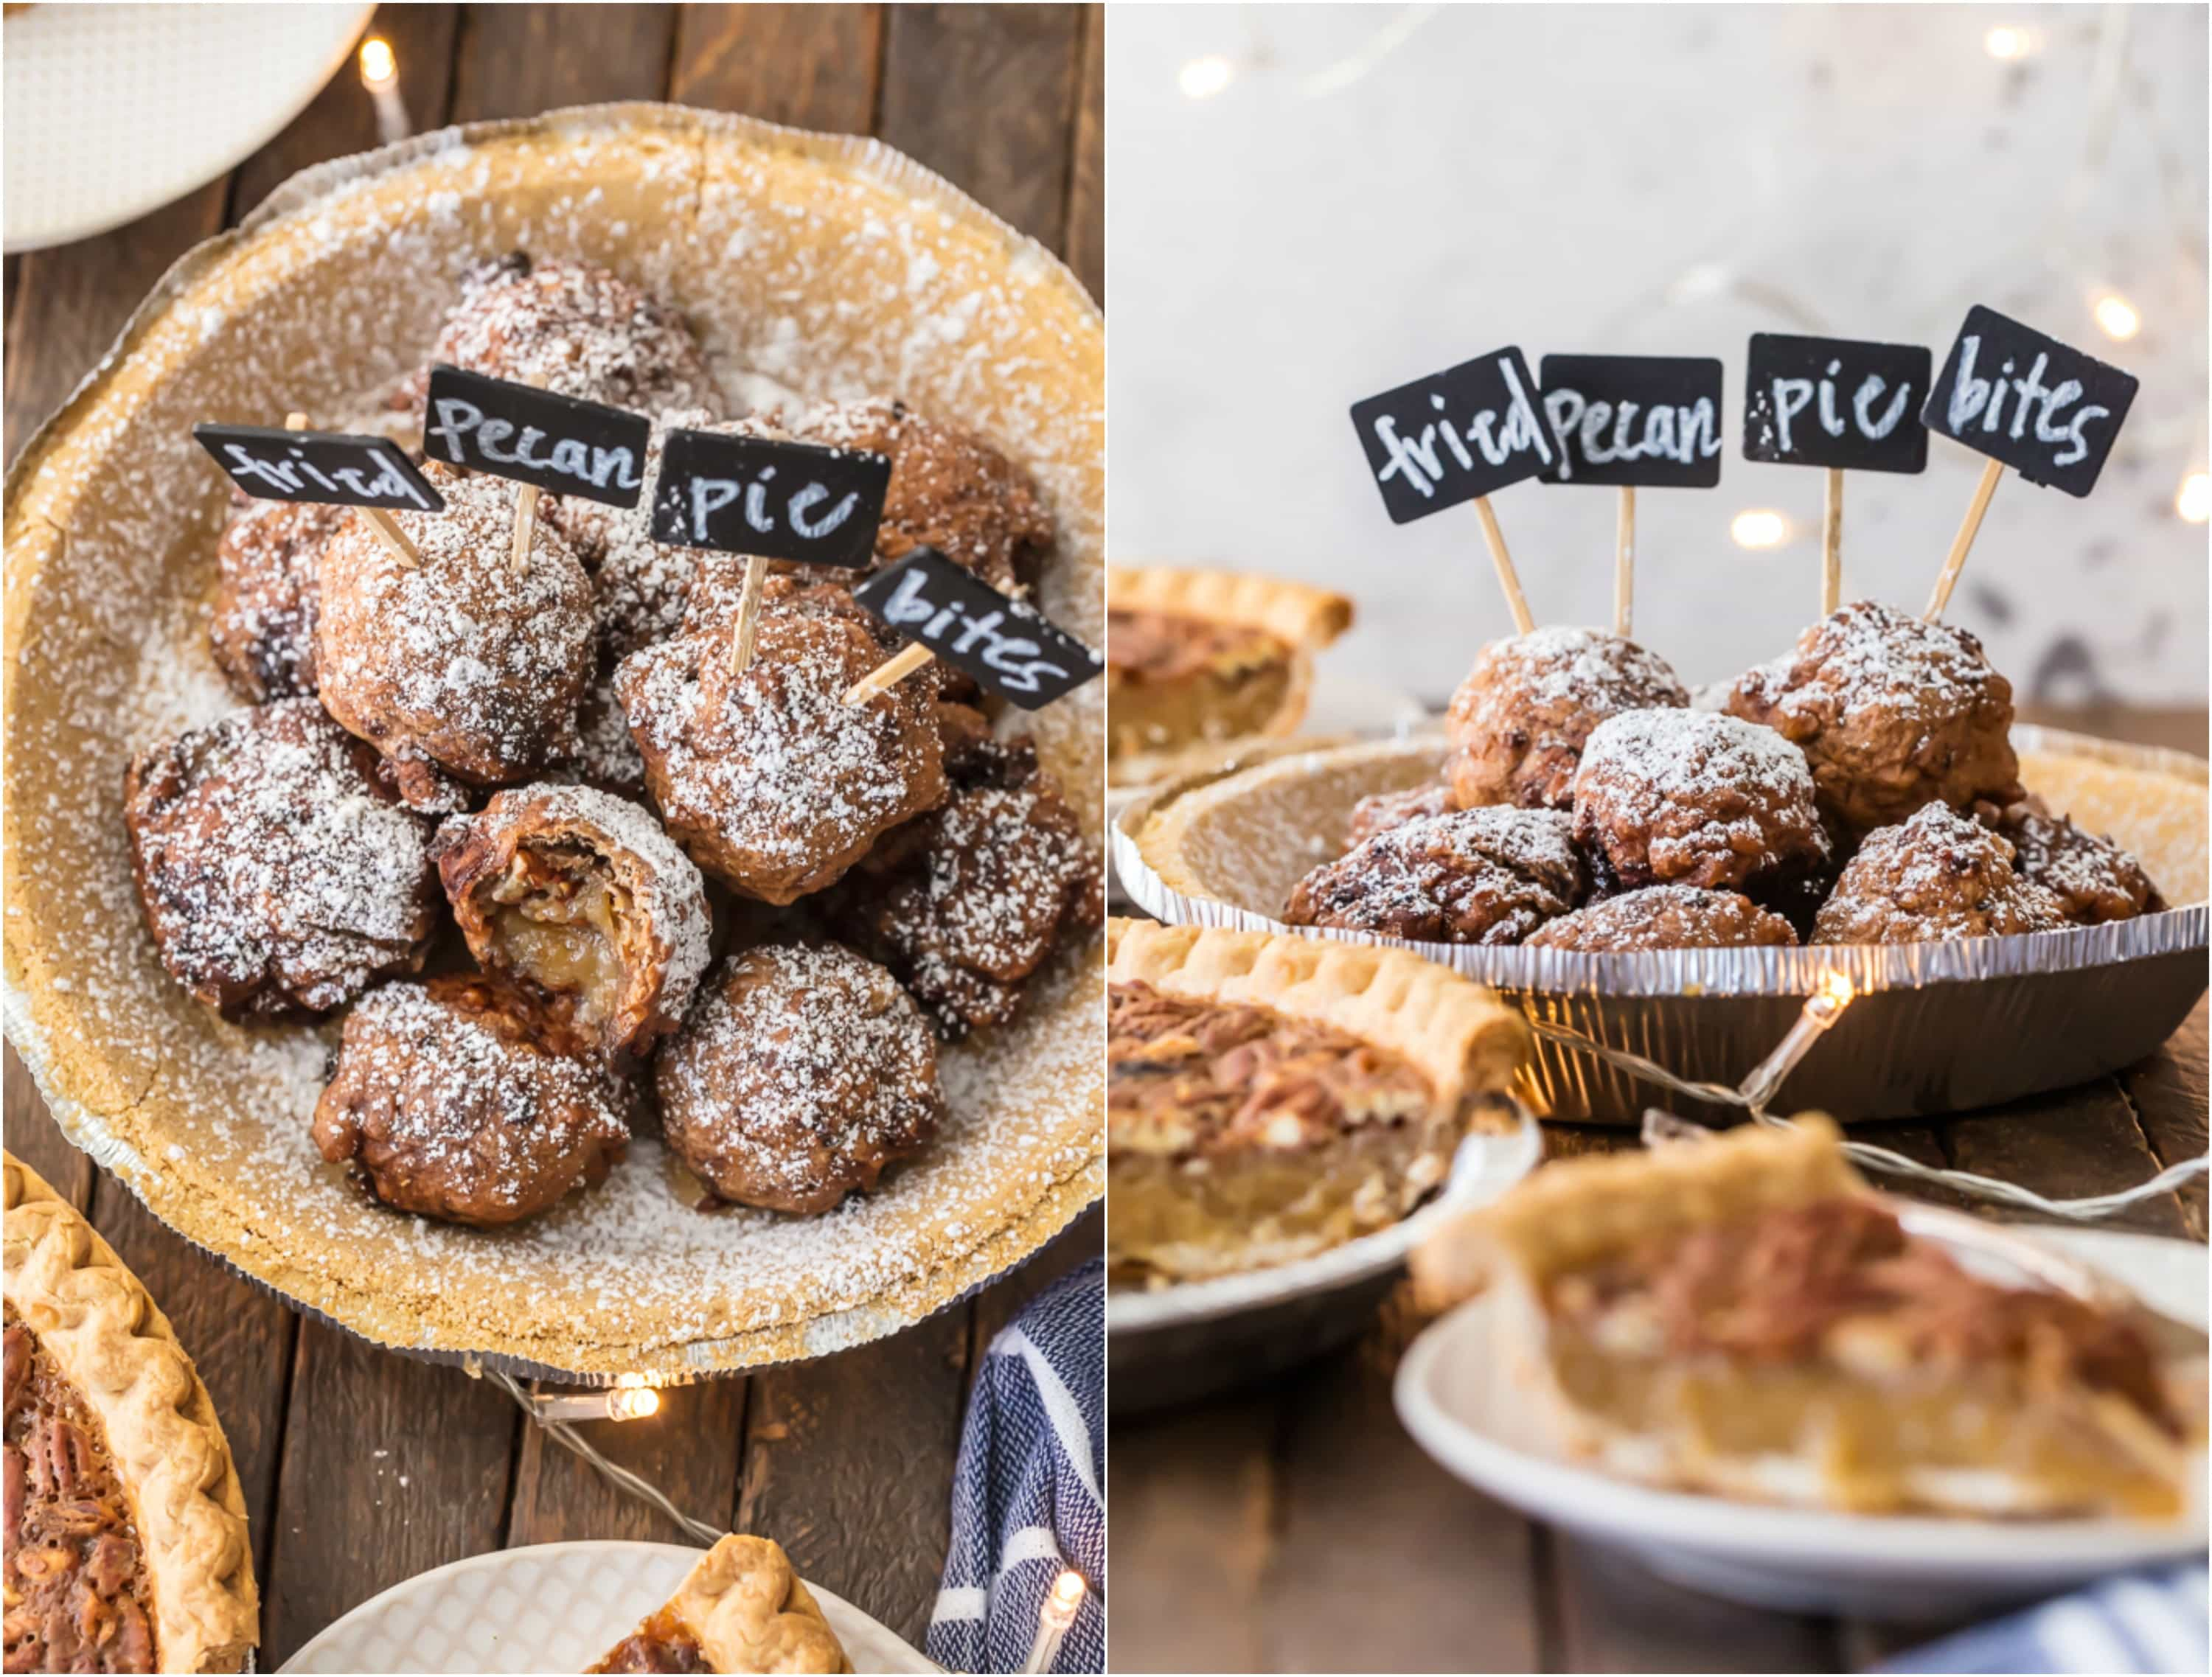 Fried pecan pie bites made from an Edward's pecan pie sitting in a pie crust